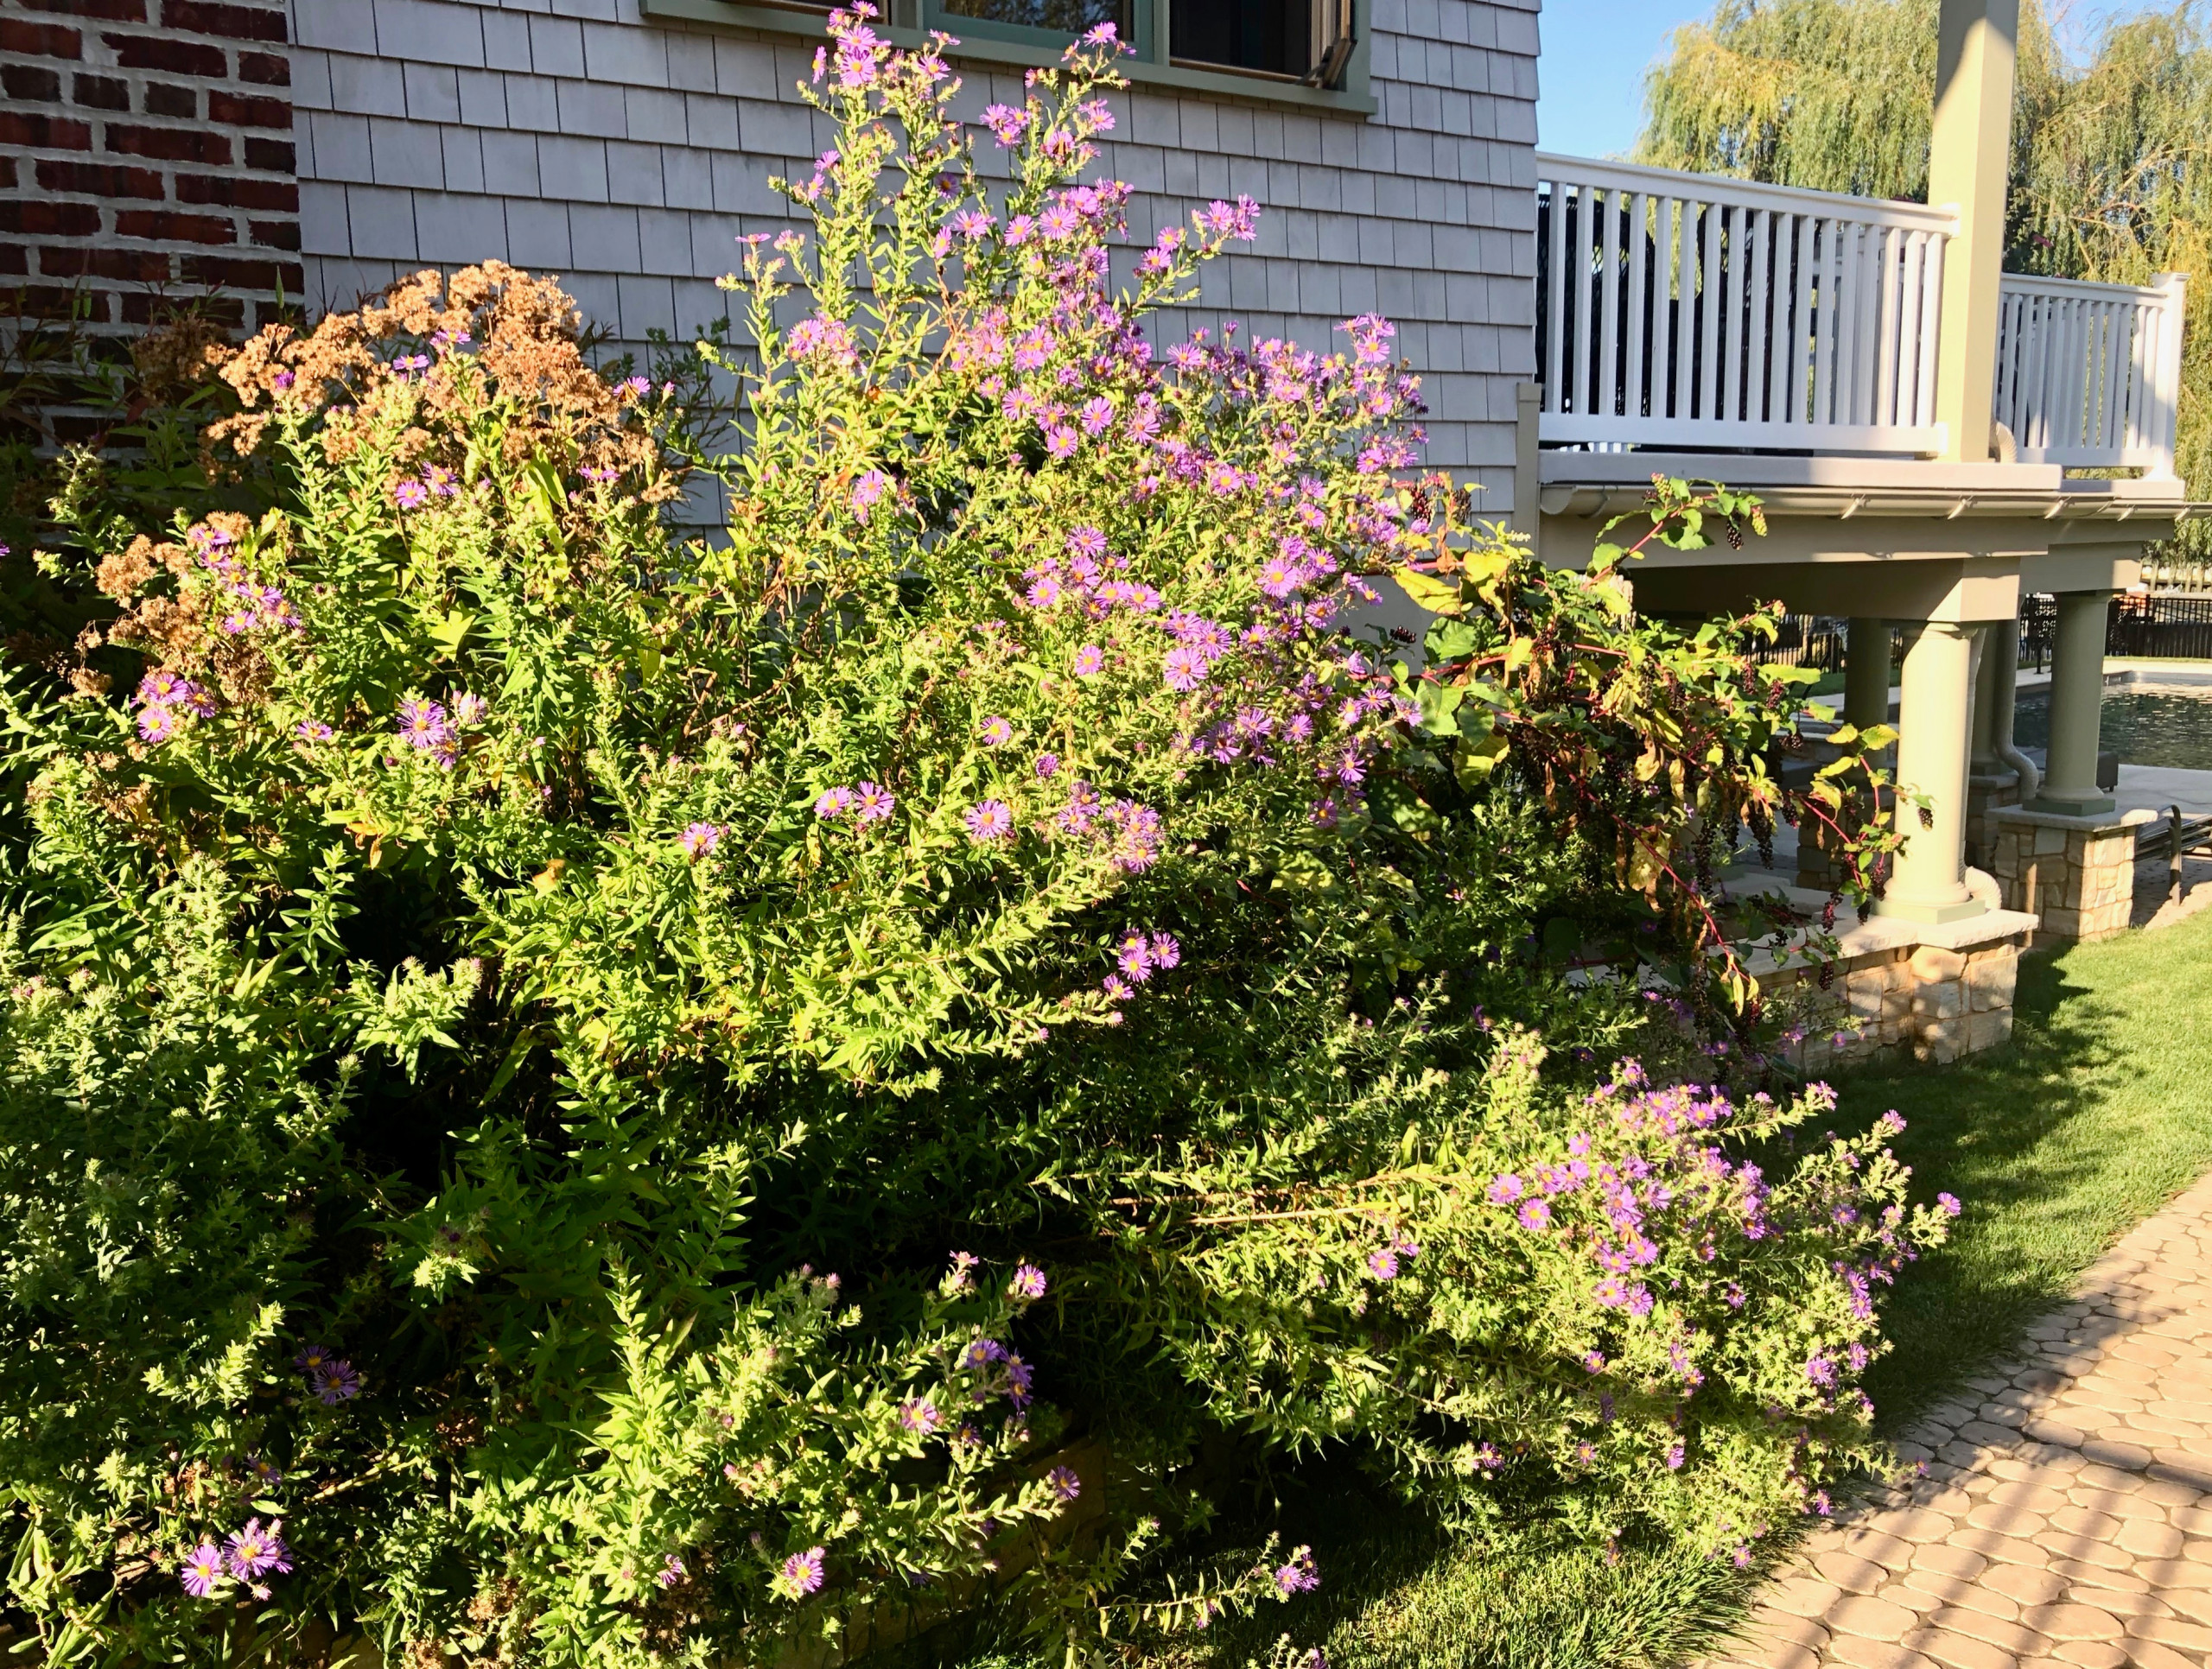 Beach House - Native New Jersey Plantings